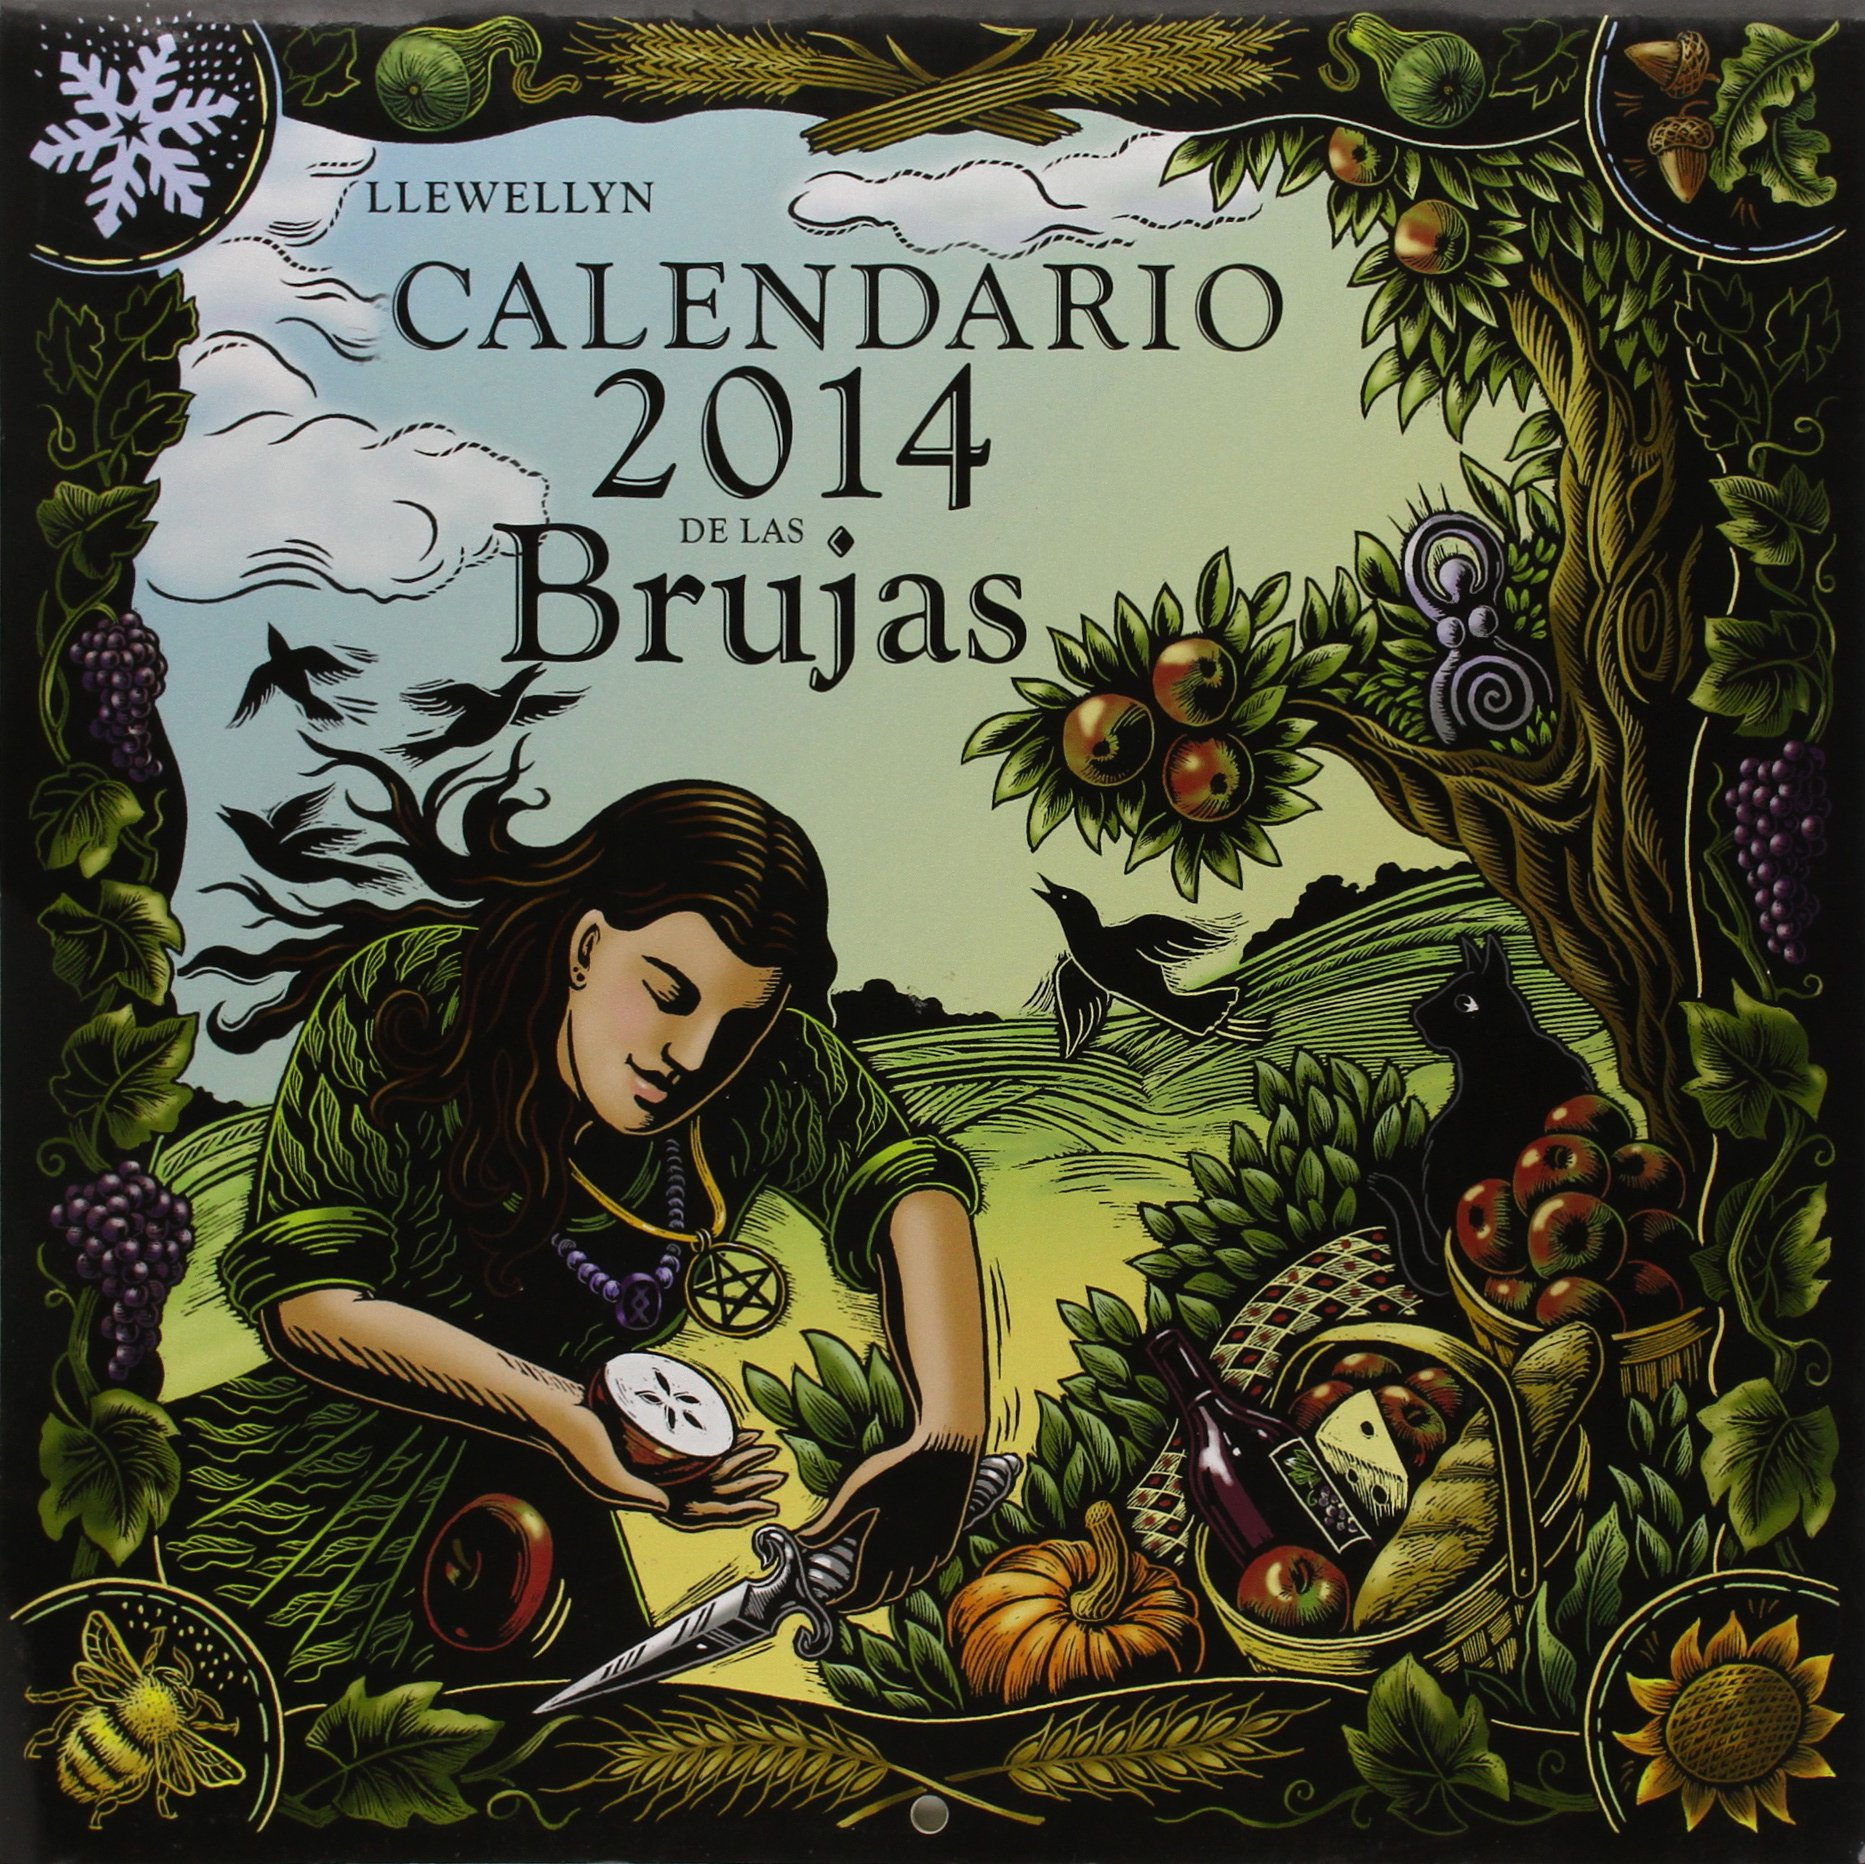 Calendario de las brujas 2014 (Spanish Edition) by Obelisco